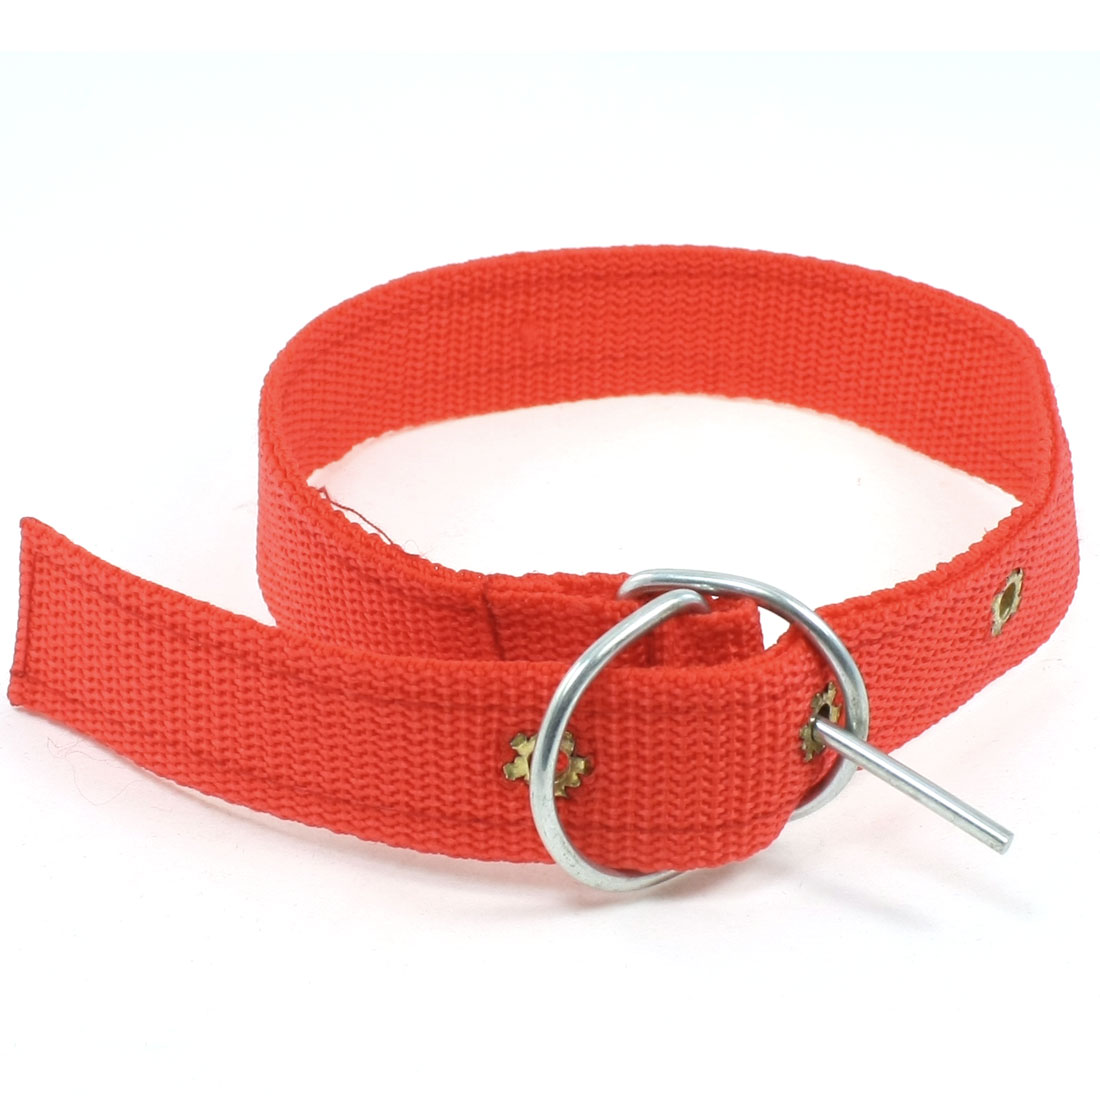 Single Prong Buckle 3 Holes Design Detail Red Adjustable Dog Pets Collar Rope